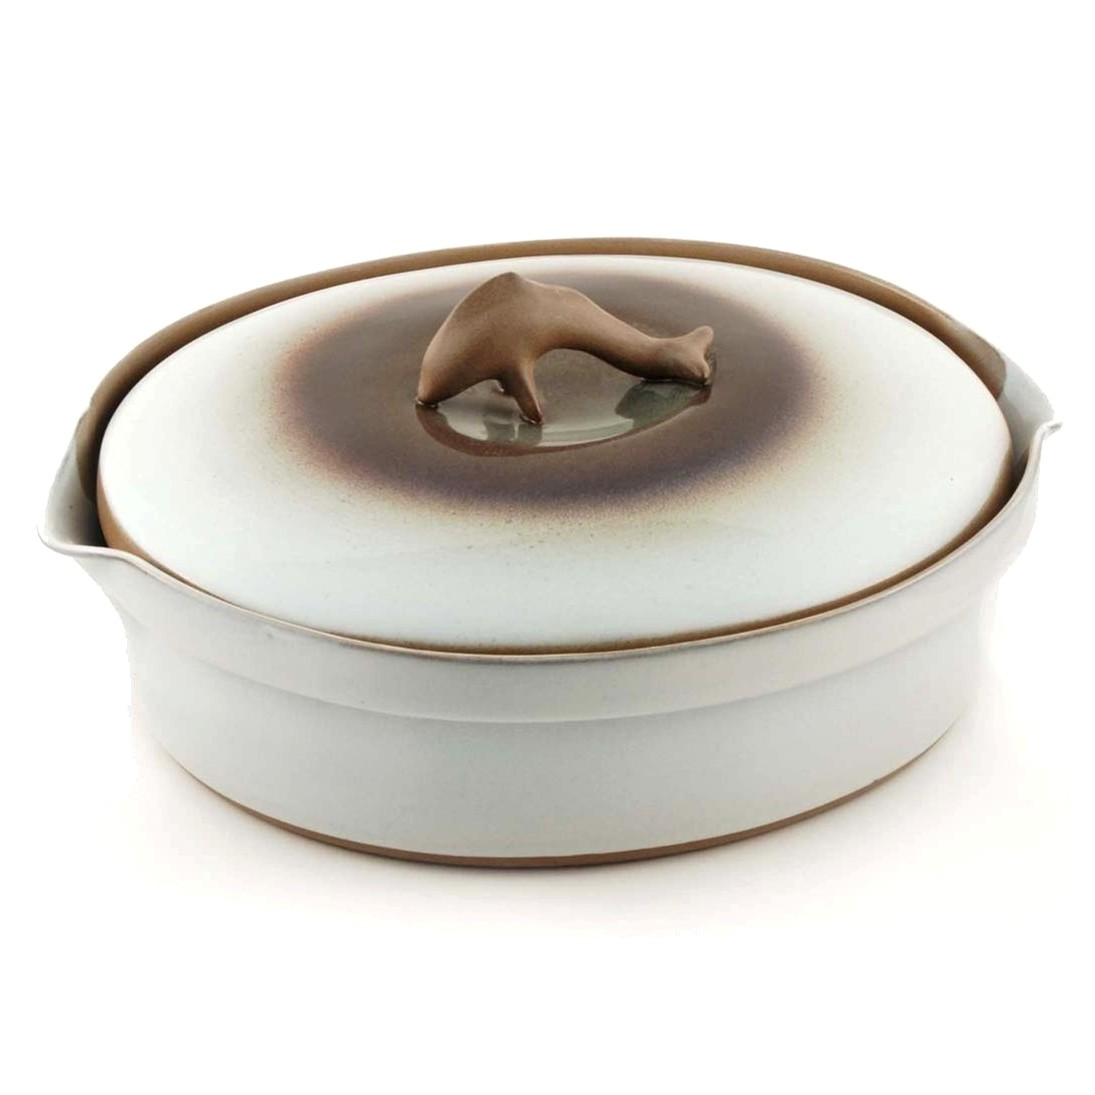 Where's the Dolphin Finial? - Many of our customers will remember this iconic casserole lid. While we've gone back to the classic-style lid as the default for our Two-Quart Casserole Dish, you can still have the Dolphin-Style lid by request! Simply leave a comment in your order, and we'll be sure to send you the Dolphin-Style lid in the color you choose.